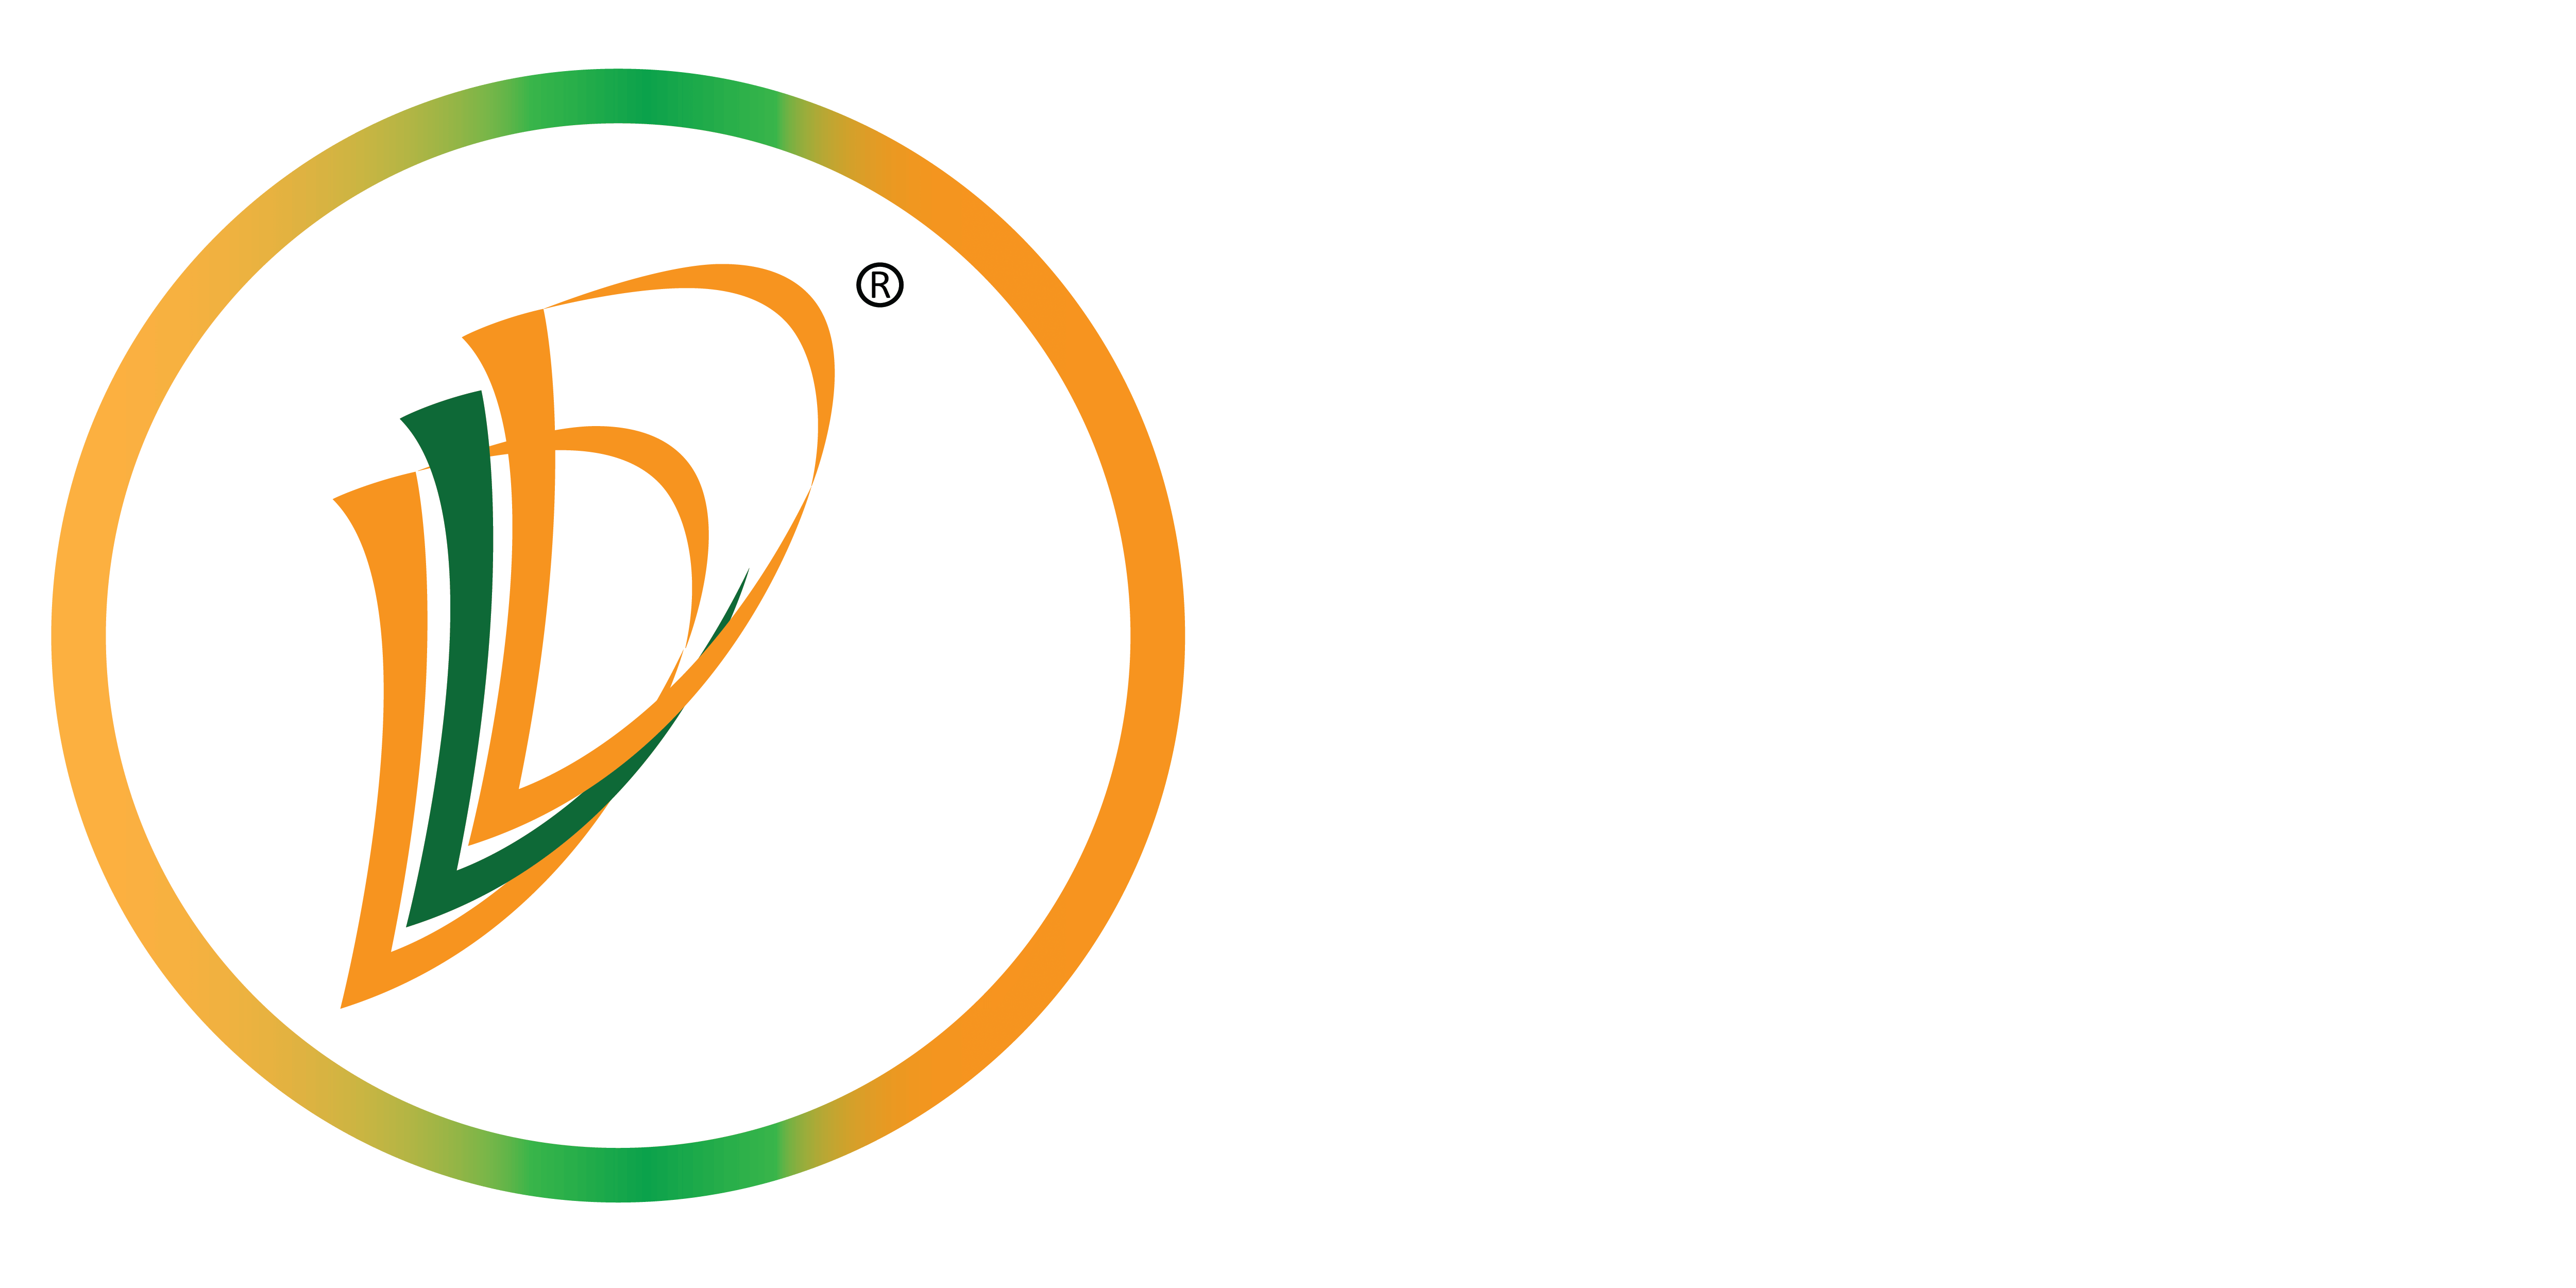 Dhrumik Land Developers Private Limited